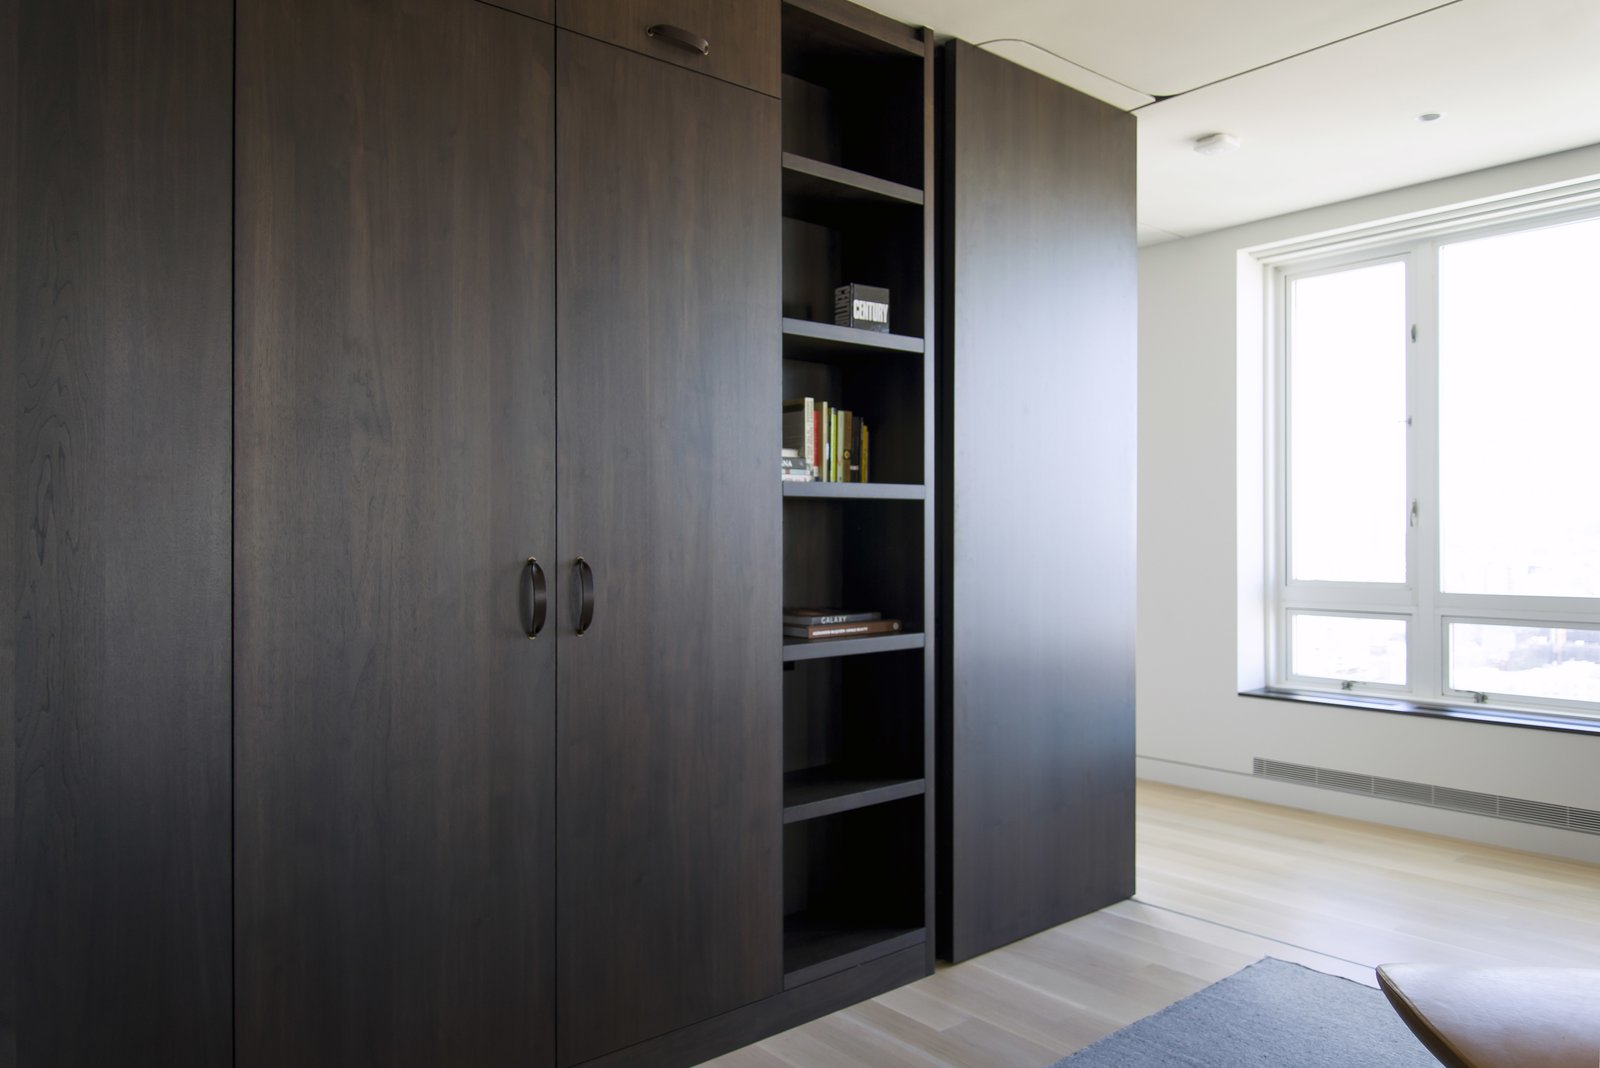 Office - Storage Nob Hill Residence by Imbue Design